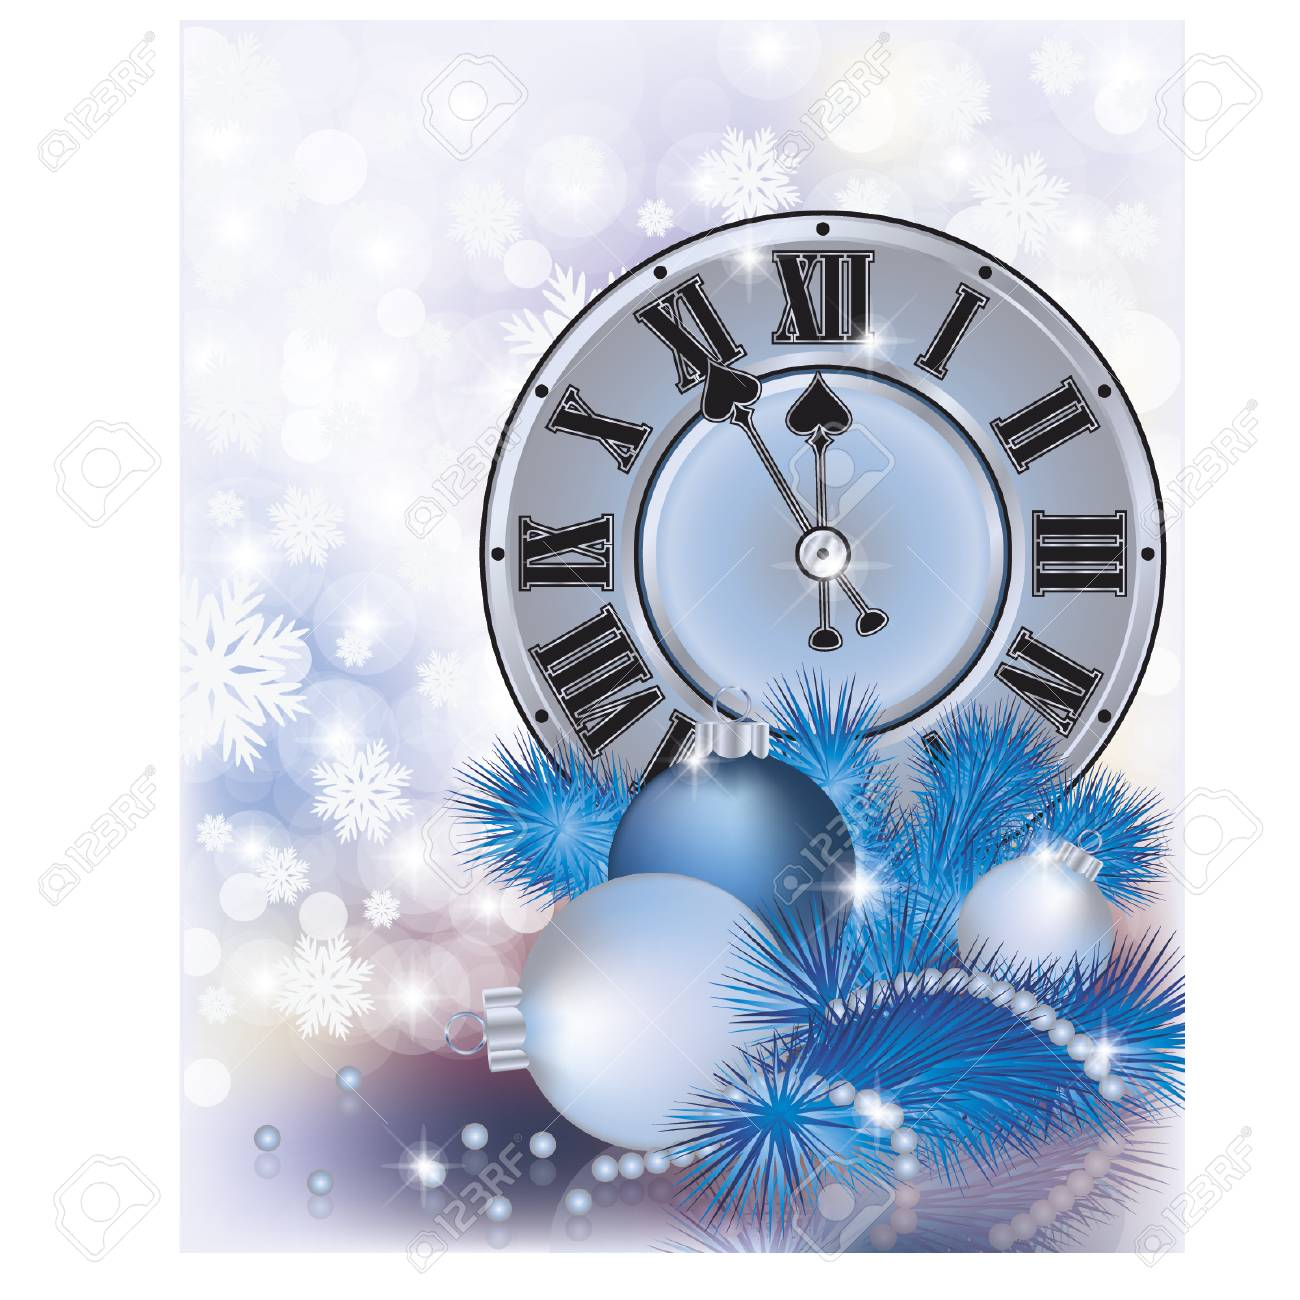 elegant new year background with silver clock stock vector 46618334